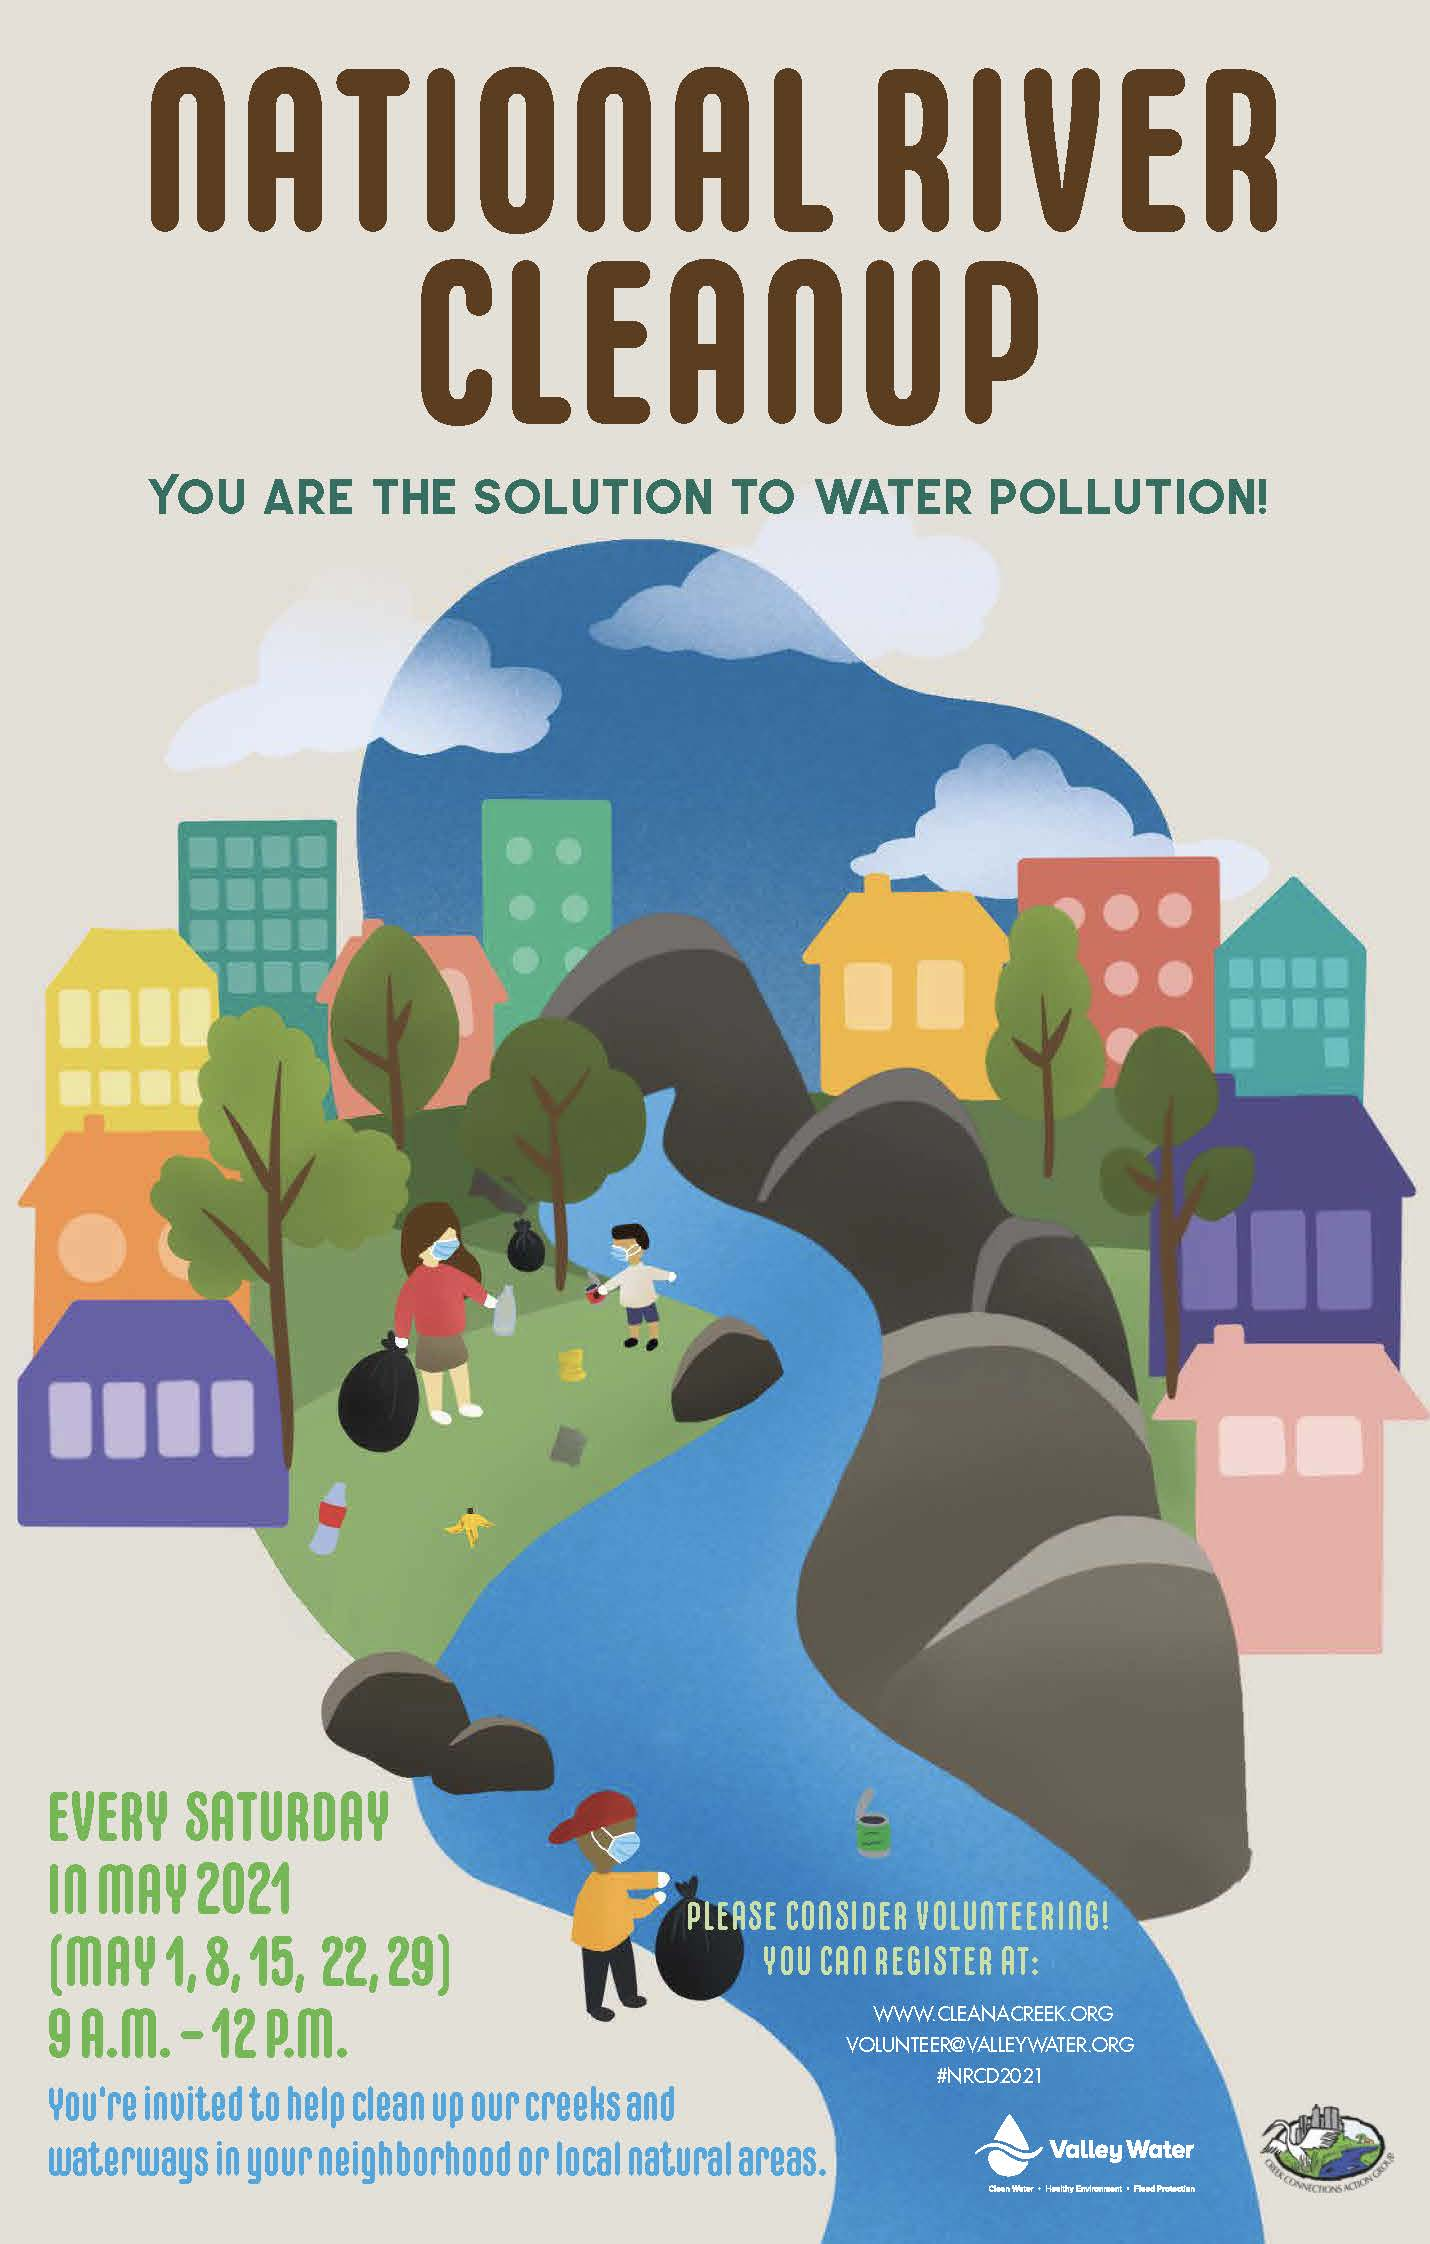 National River Cleanup Month Event Poster 2021